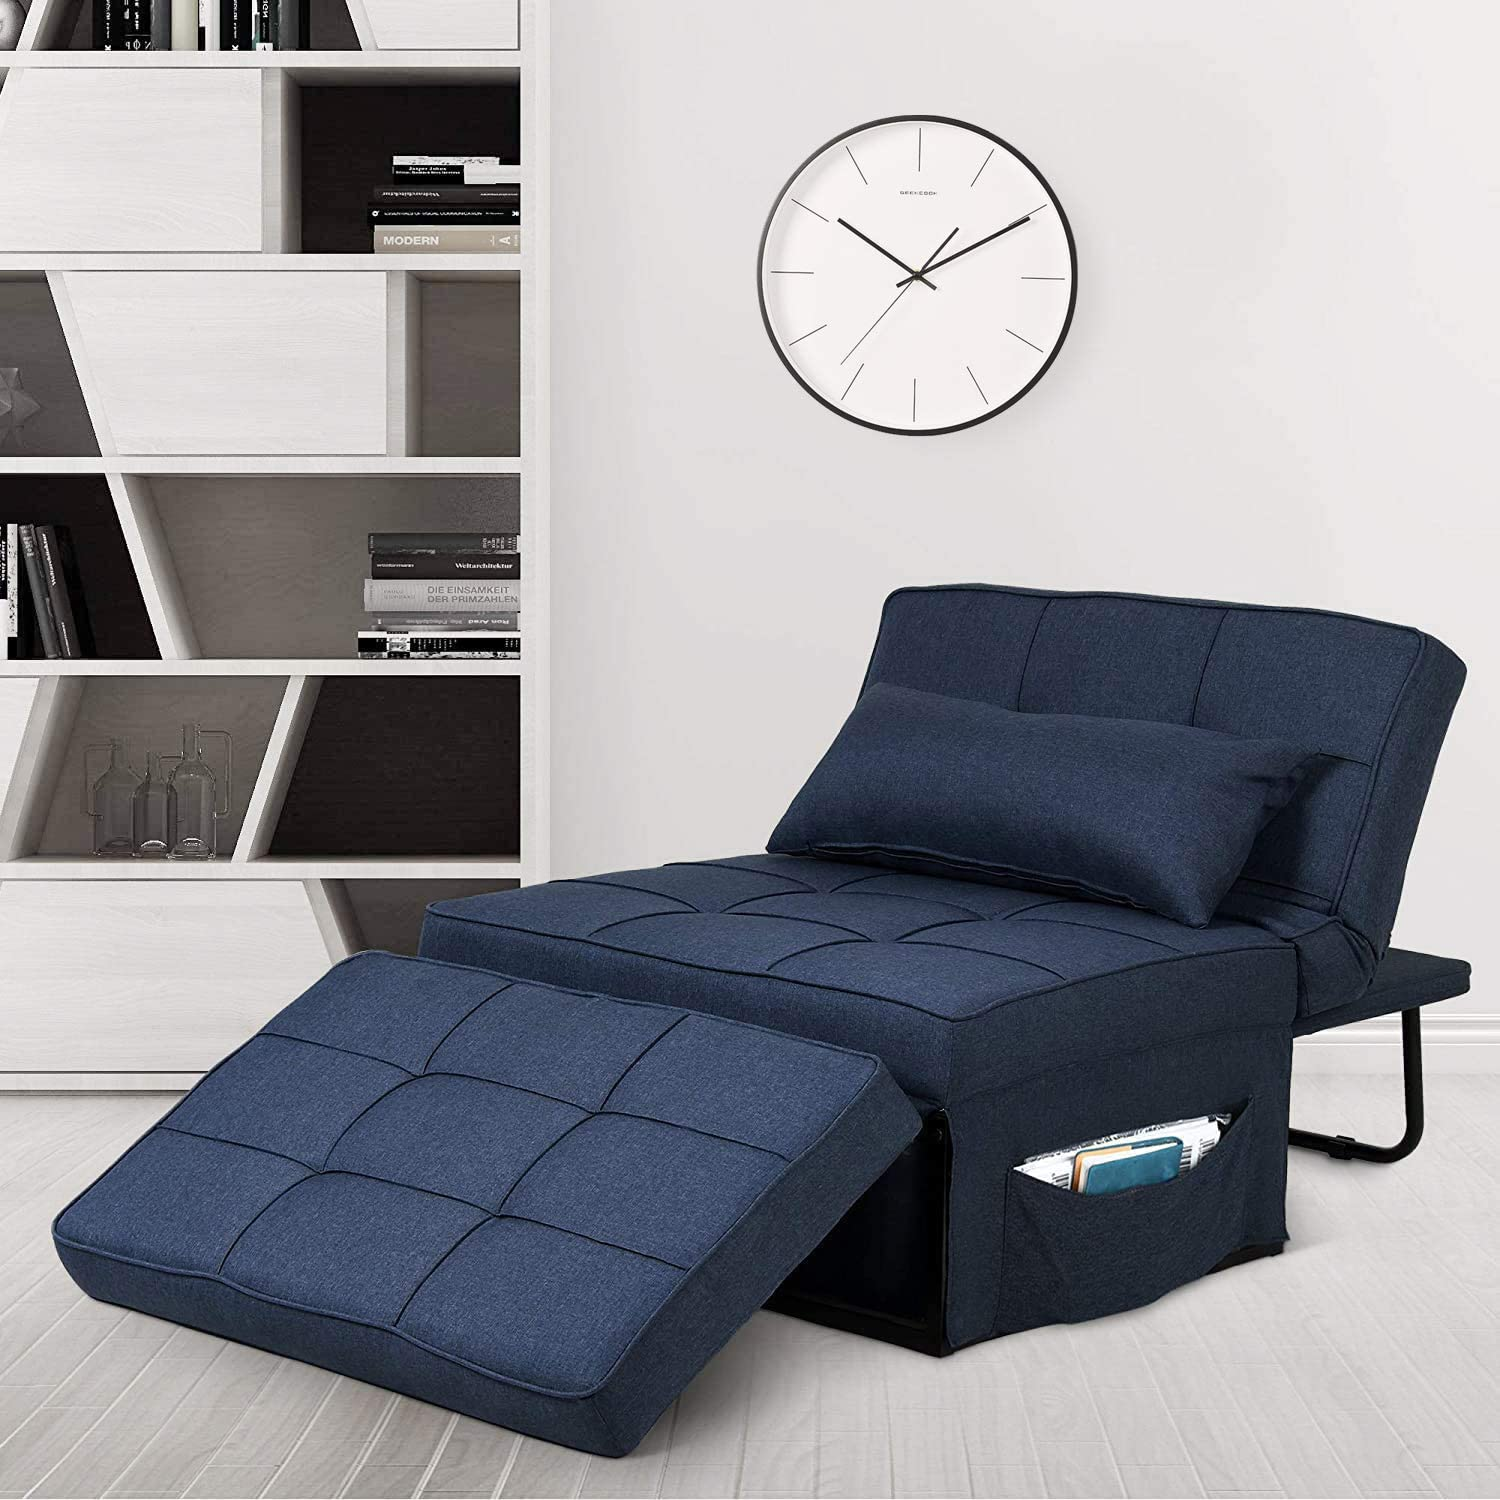 Saemoza Sofa Bed, 4 in 1 Multi Function Folding Ottoman Sleeper Bed with Storage Bag, Modern Convertible Chair Adjustable Backrest Sleeper Couch Bed for Living Room/Small Apartment, Navy Blue